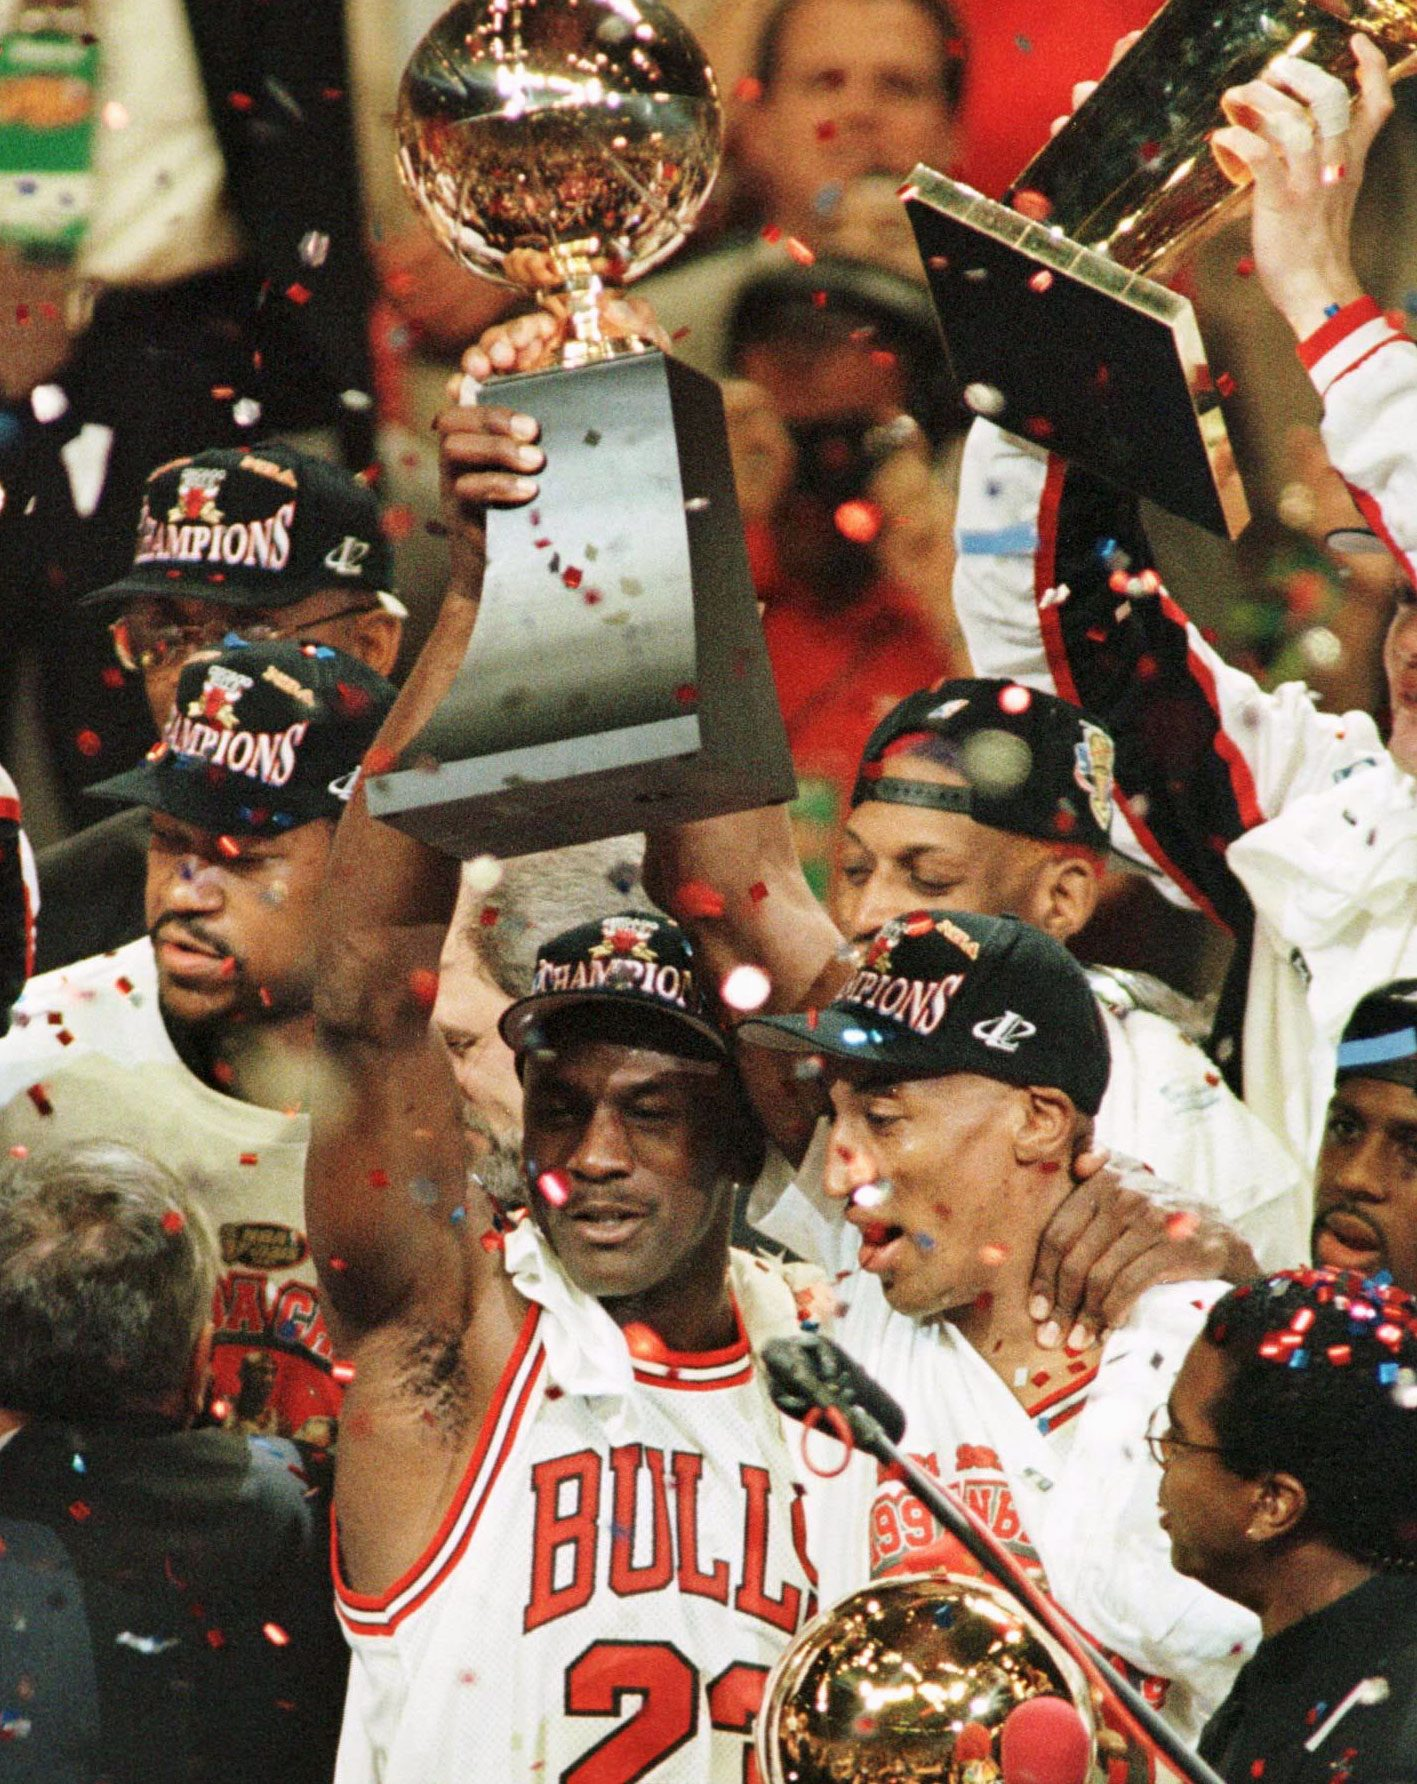 Michael Jordan and Scottie Pippen celebrate after one of their six NBA Finals victories (Photo: Reuters)